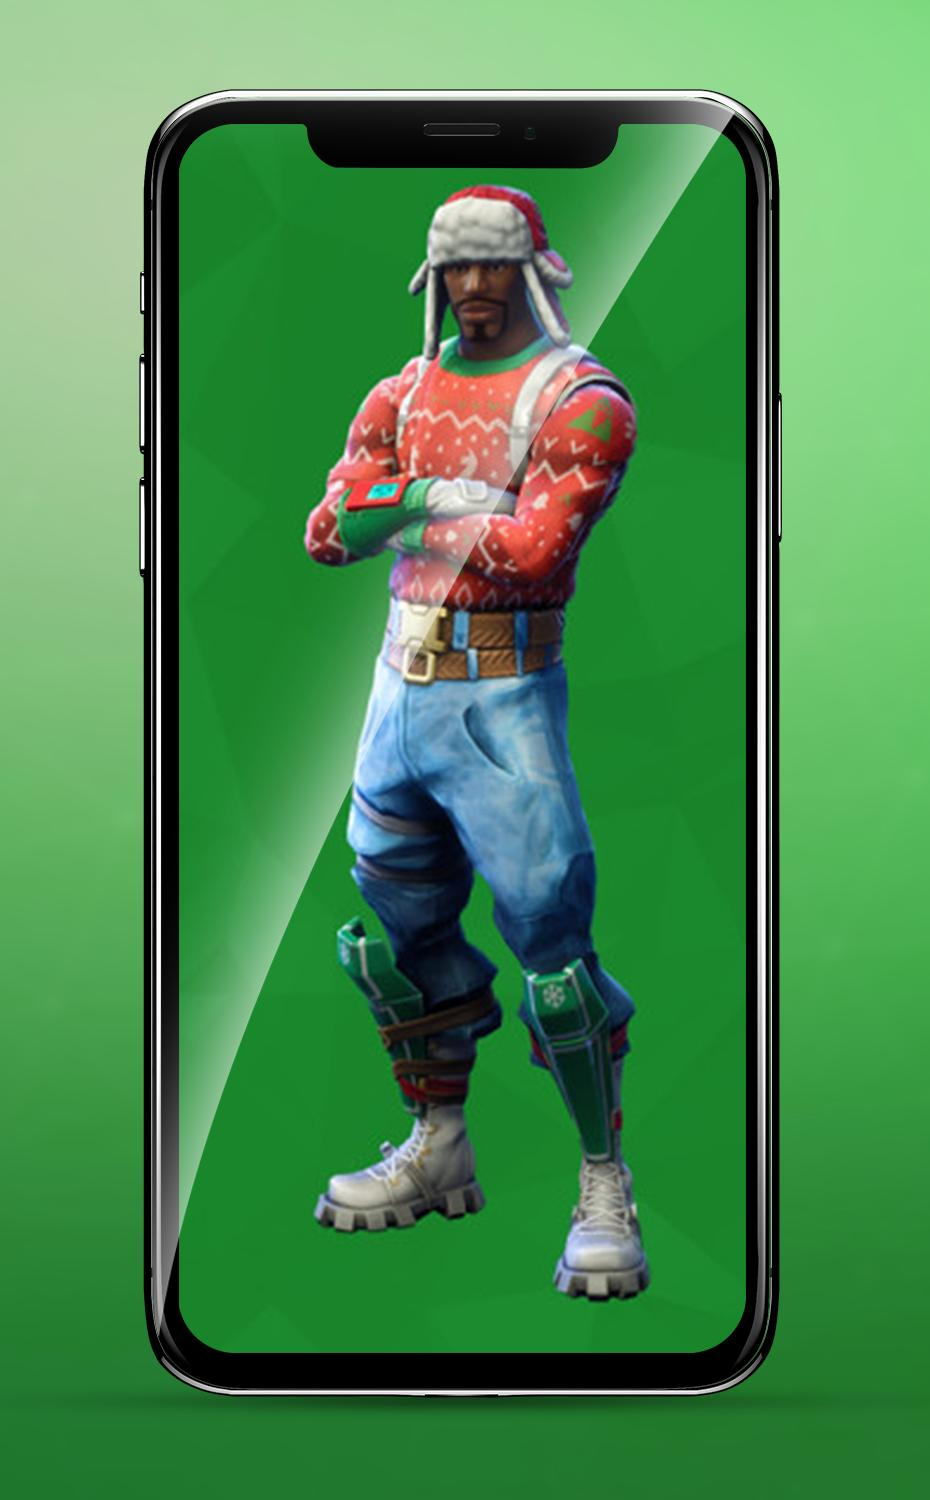 Fortnite Skins Wallpapers For Android Apk Download Bbcreamqueen Com